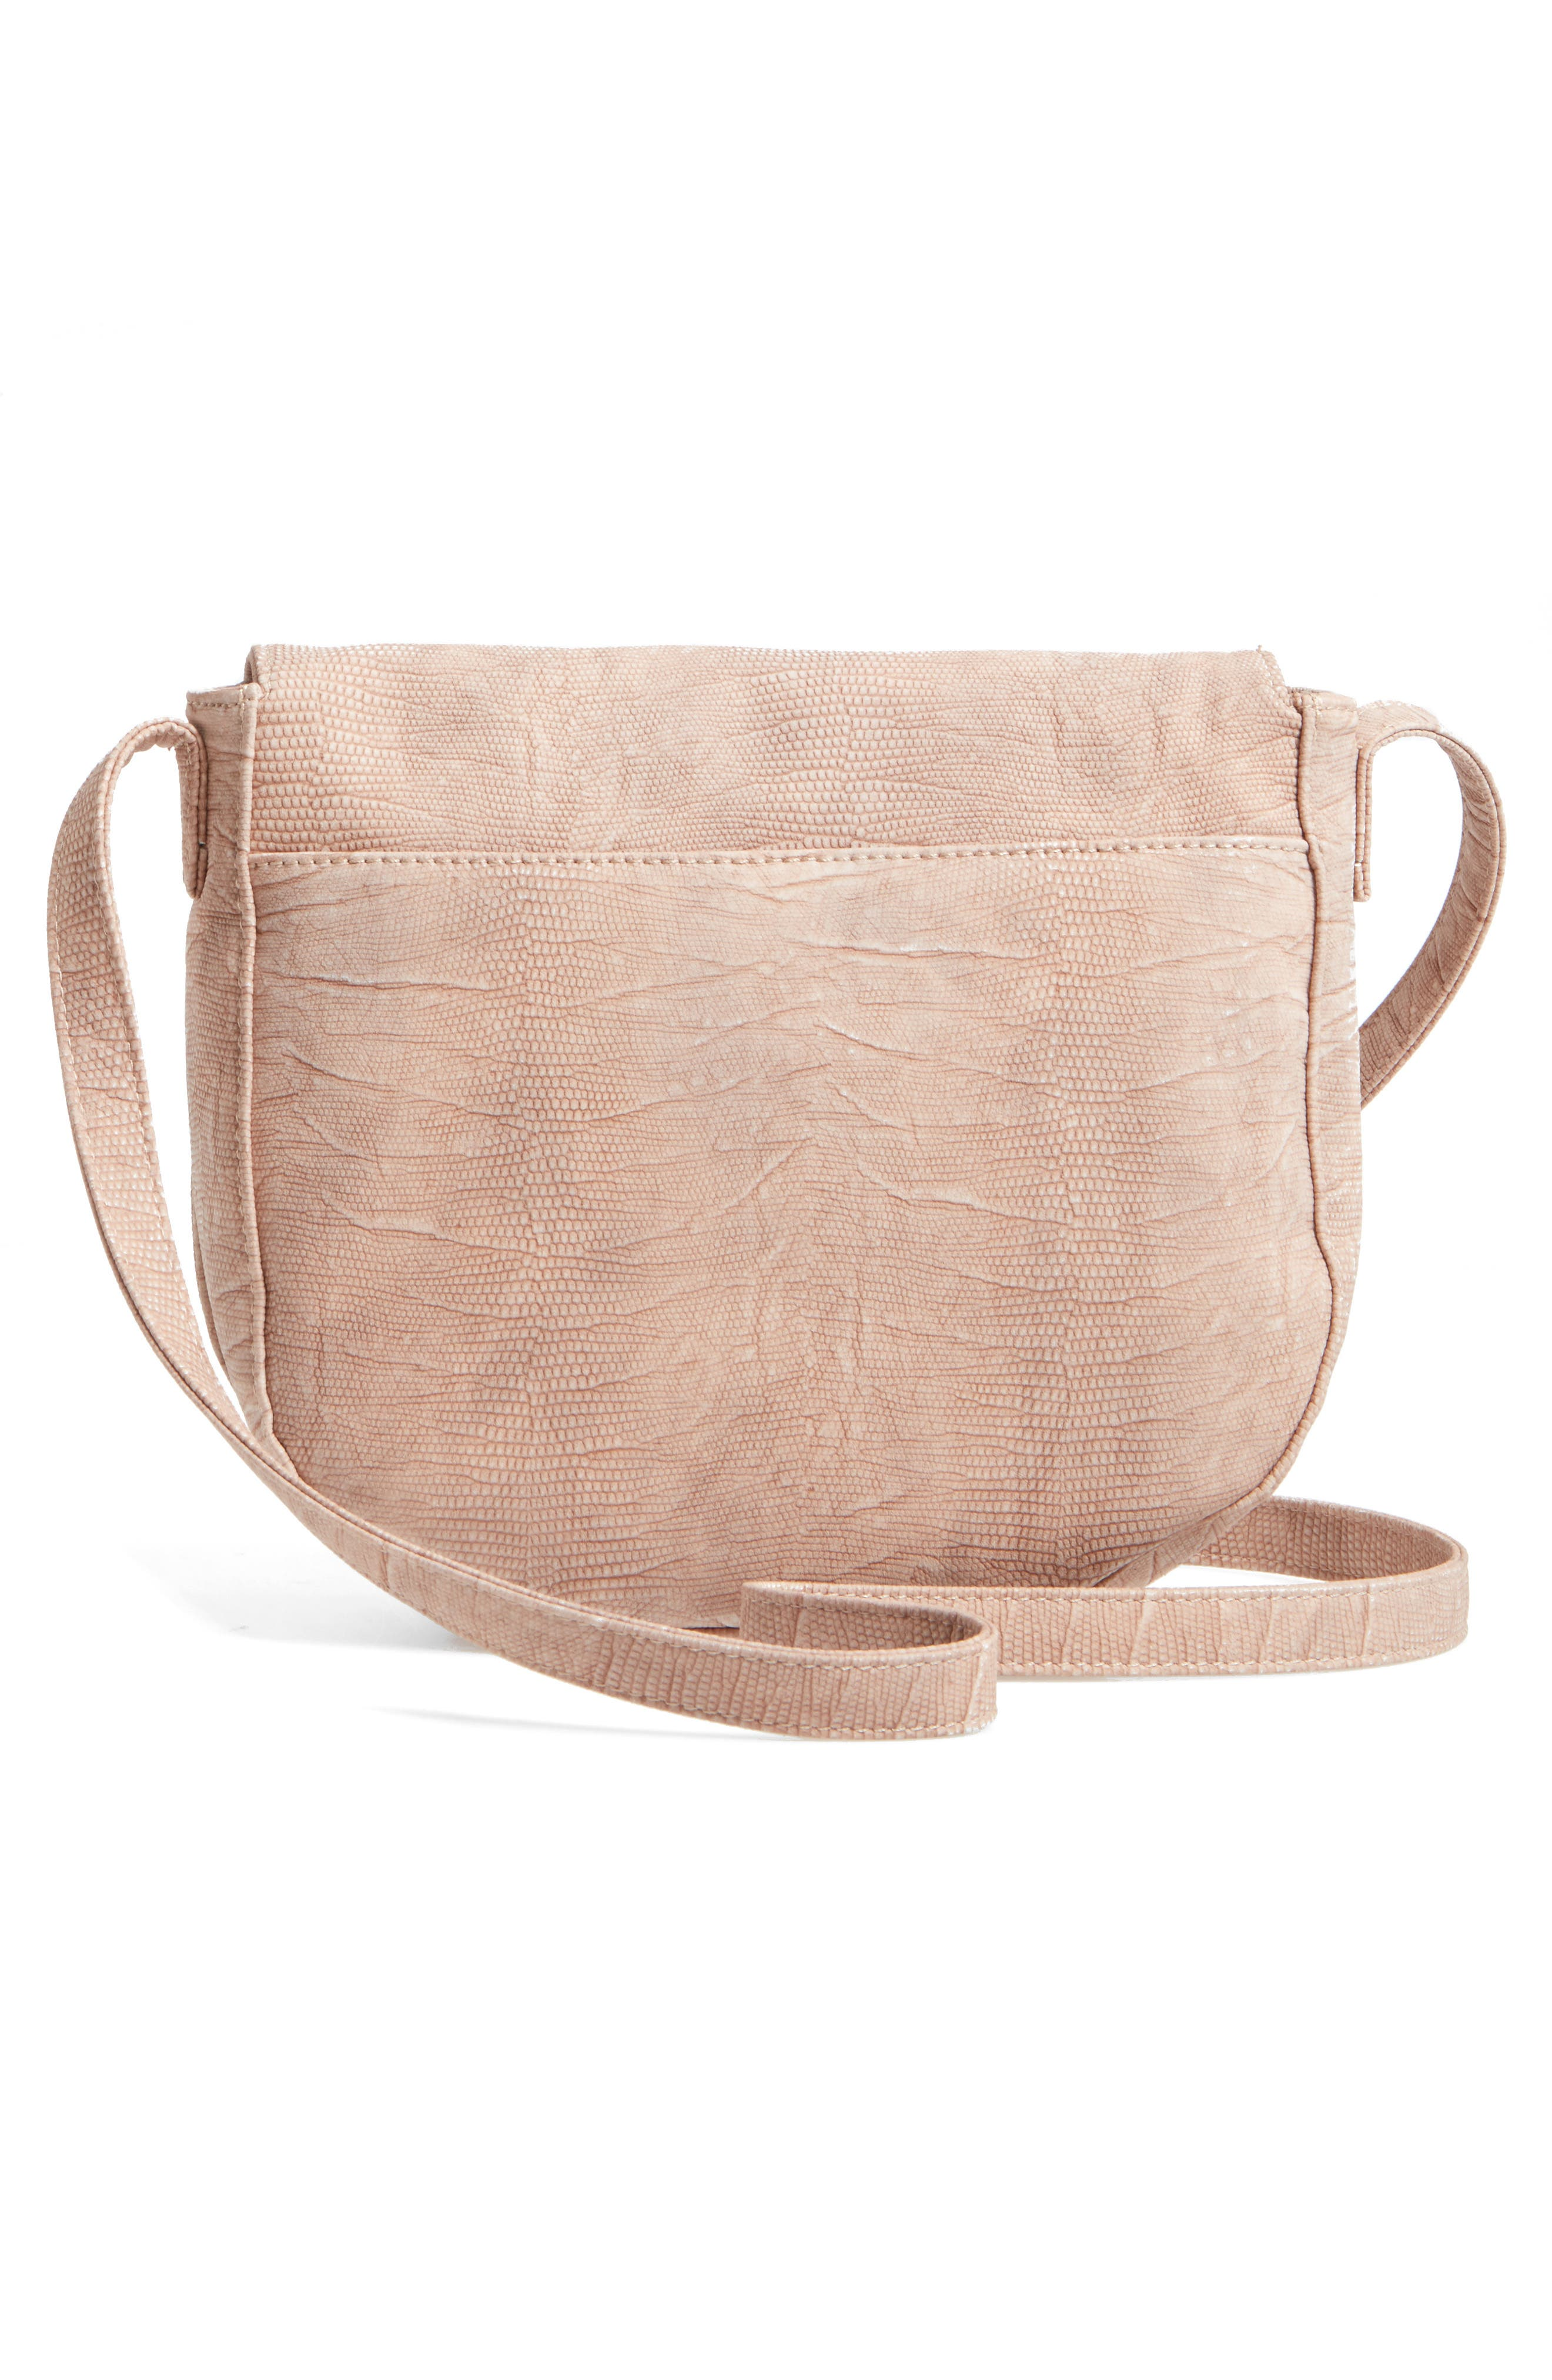 ,                             Livvy Faux Leather Crossbody Saddle Bag,                             Alternate thumbnail 9, color,                             500